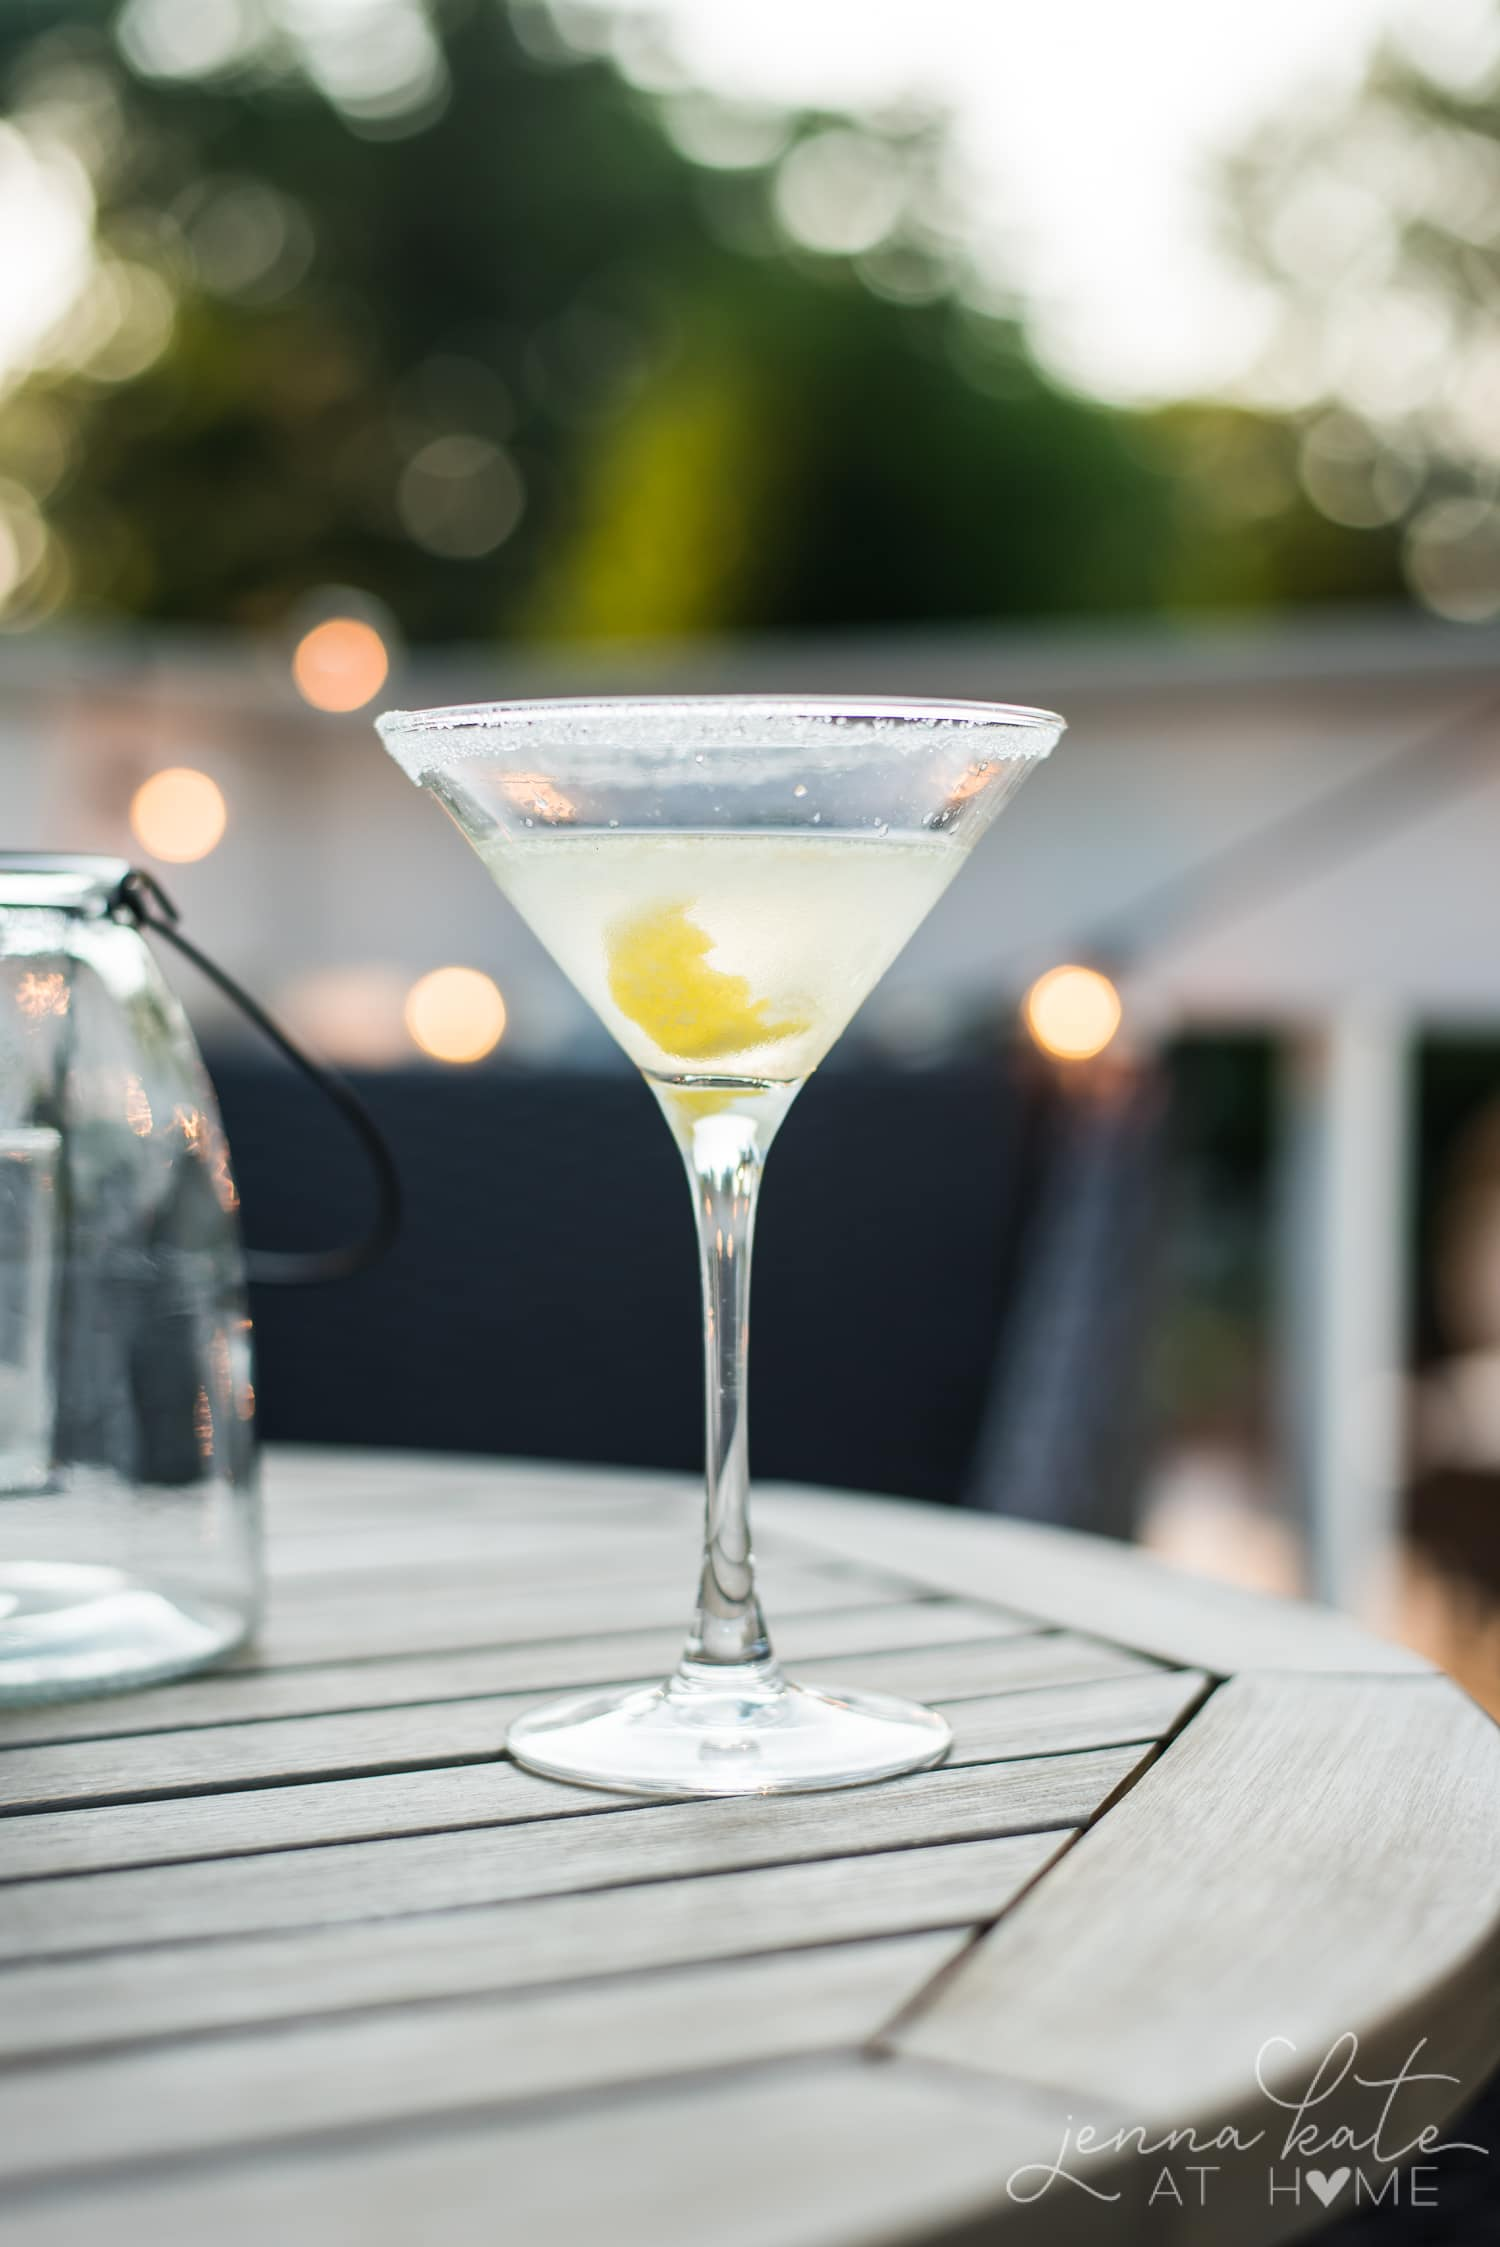 Close up of the martini in the glass